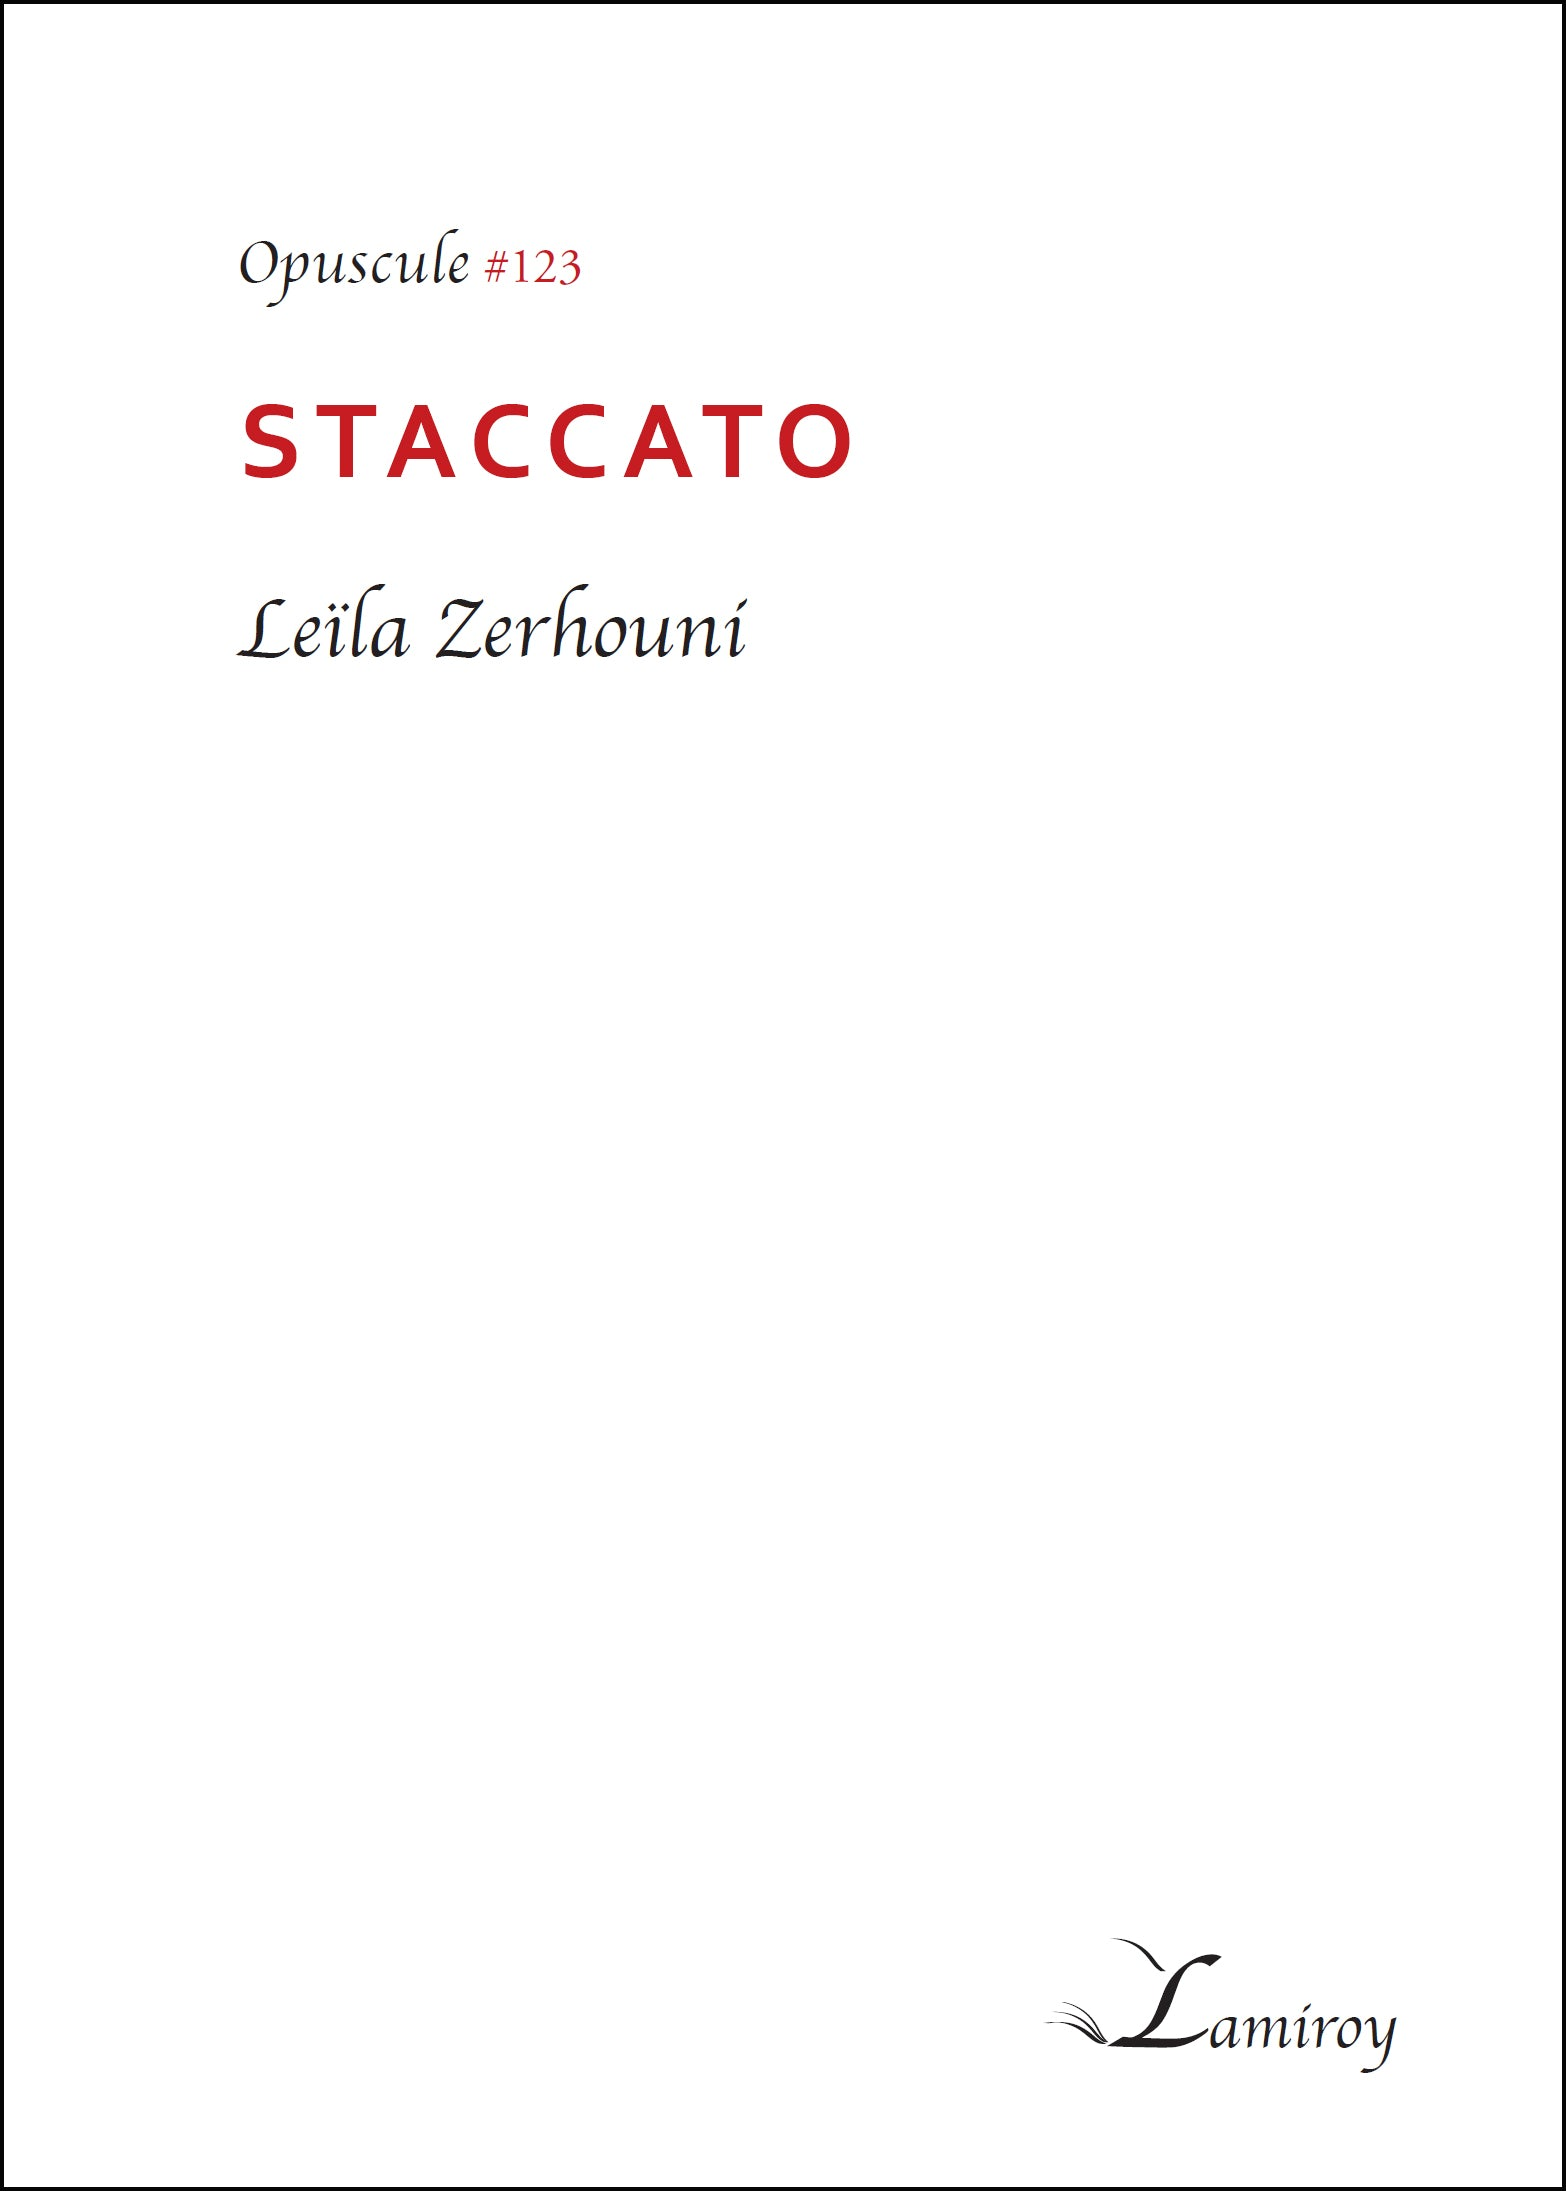 Staccato #123